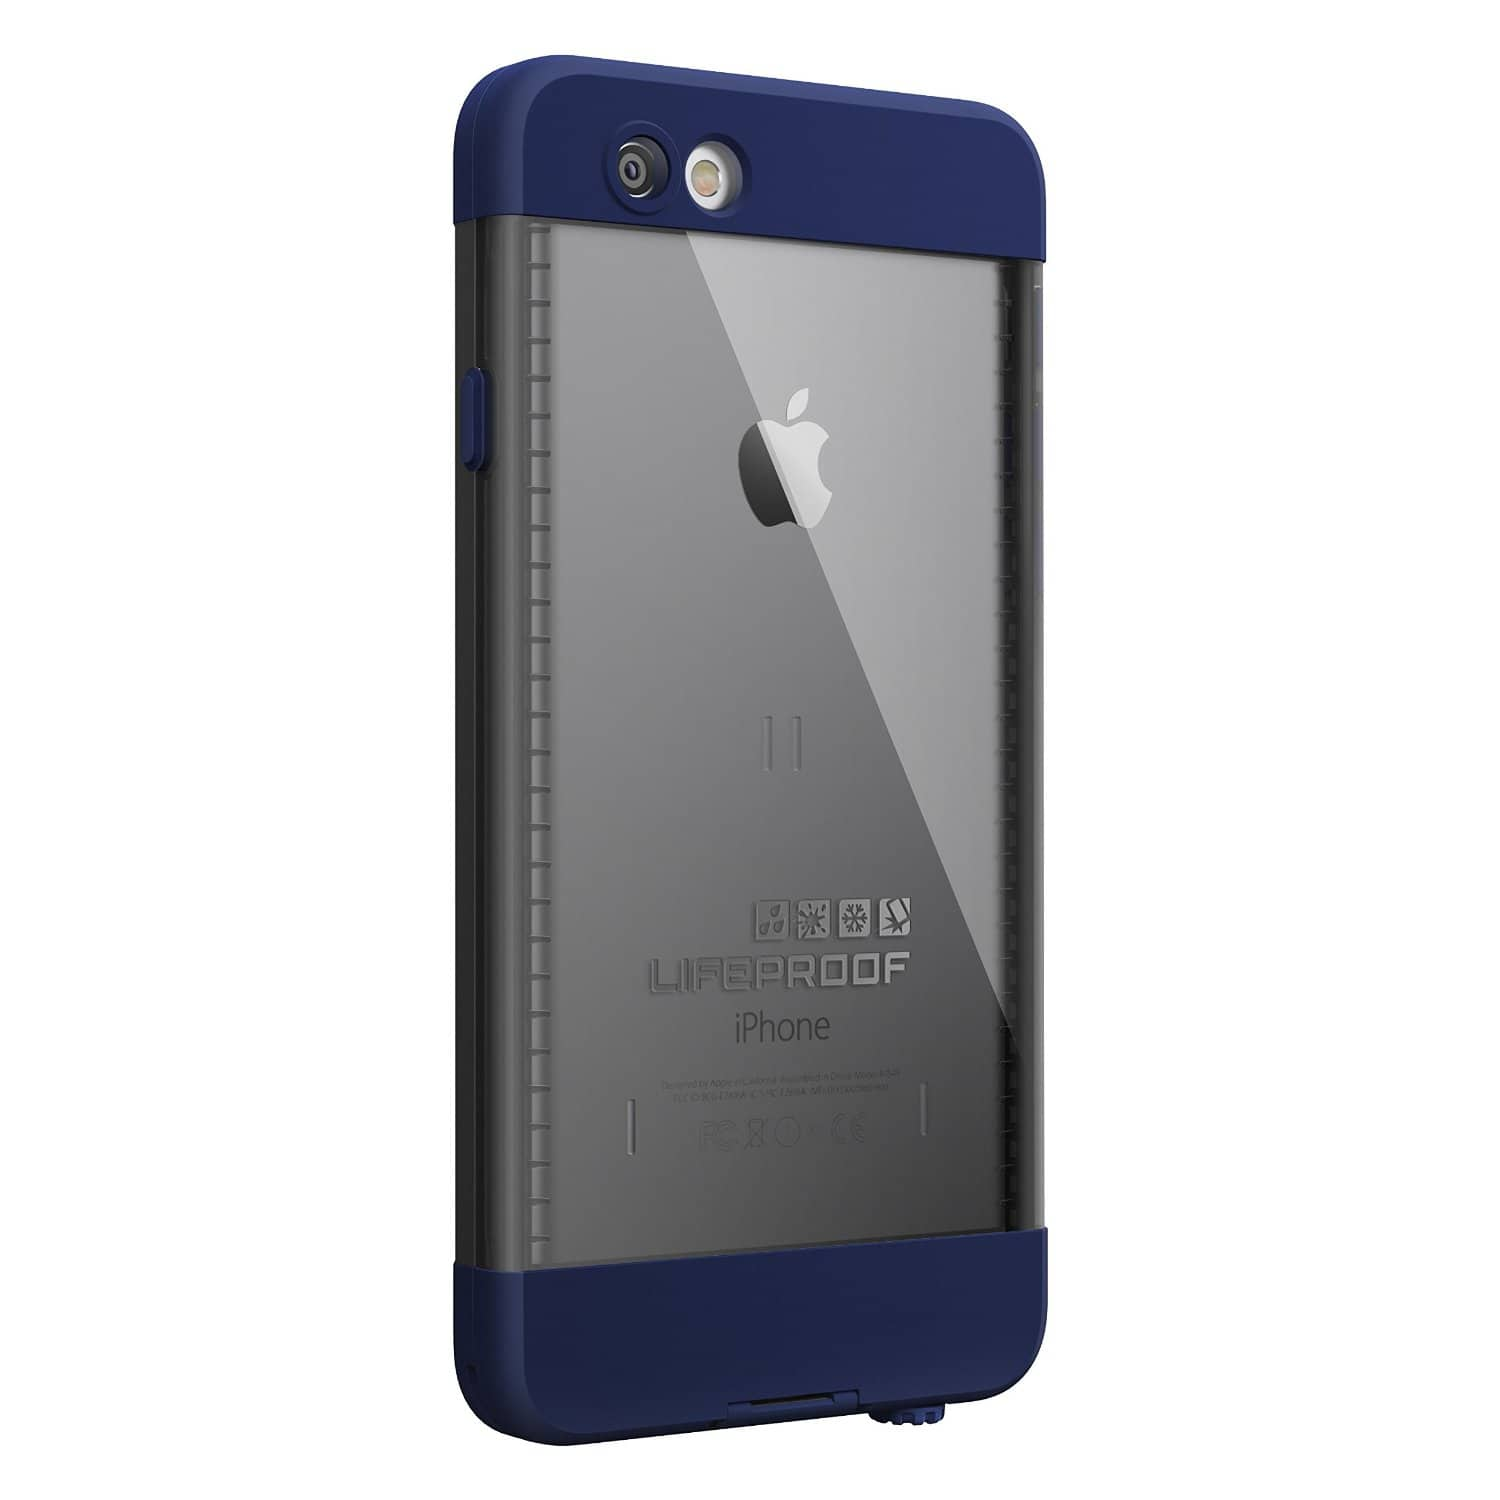 ENDING VERY SOON - LifeProof Nuud iPhone 6 blue case + $20 BB Gift Card - $28